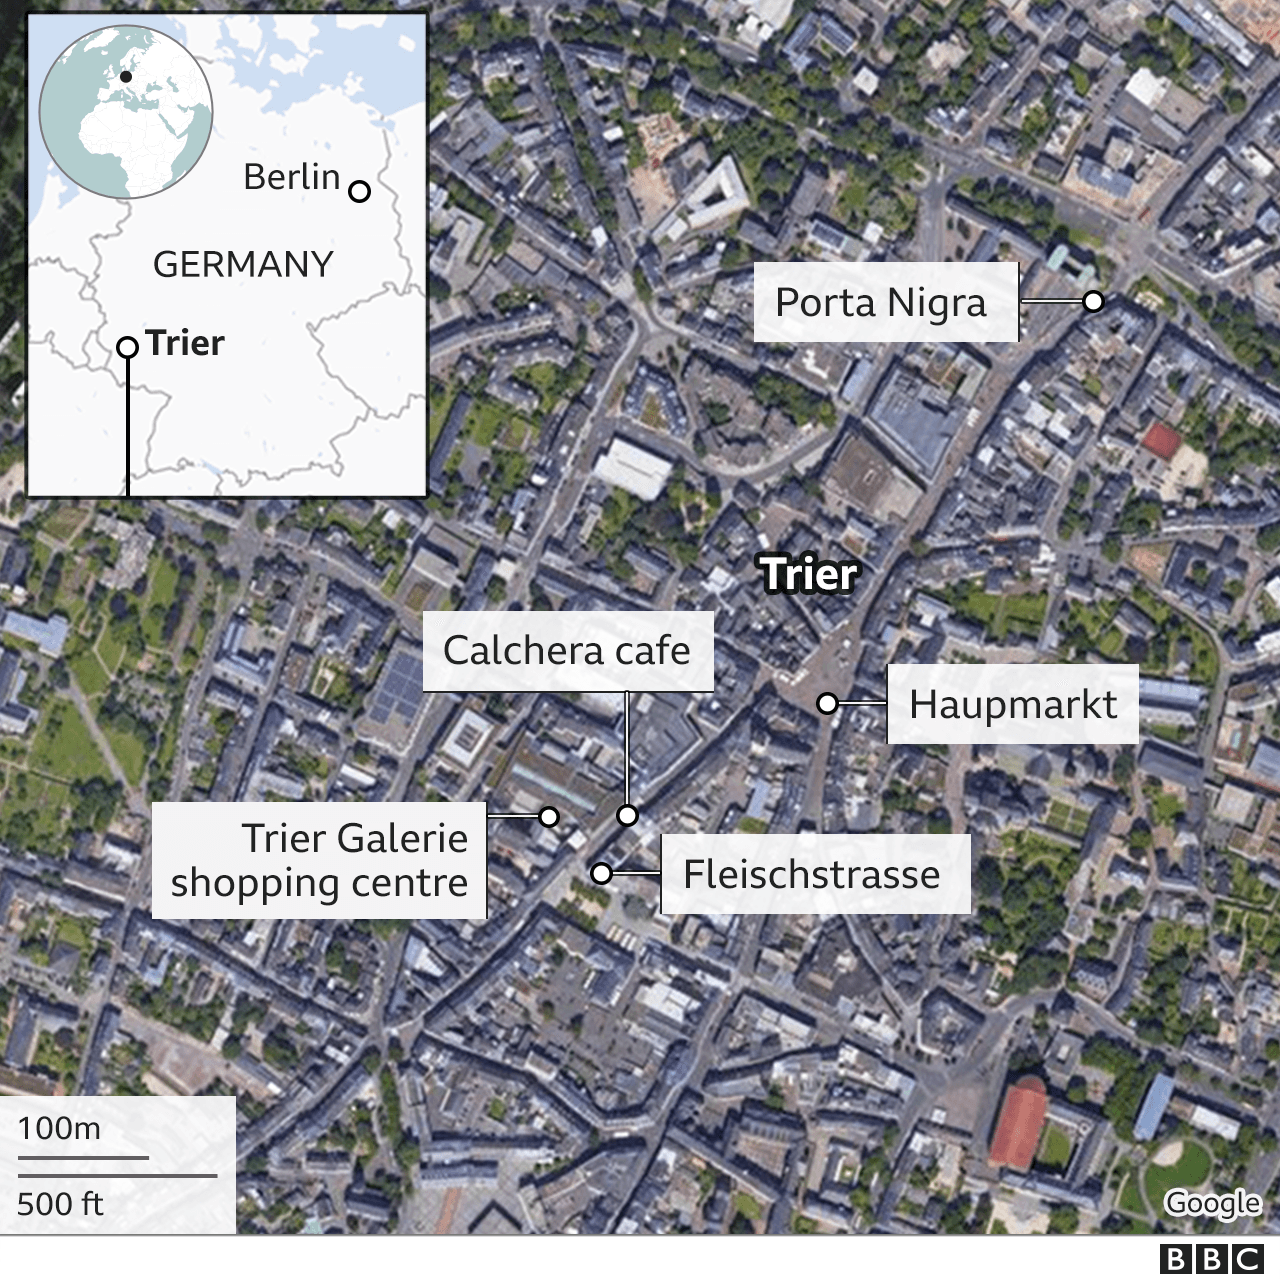 Location of the incident in Trier